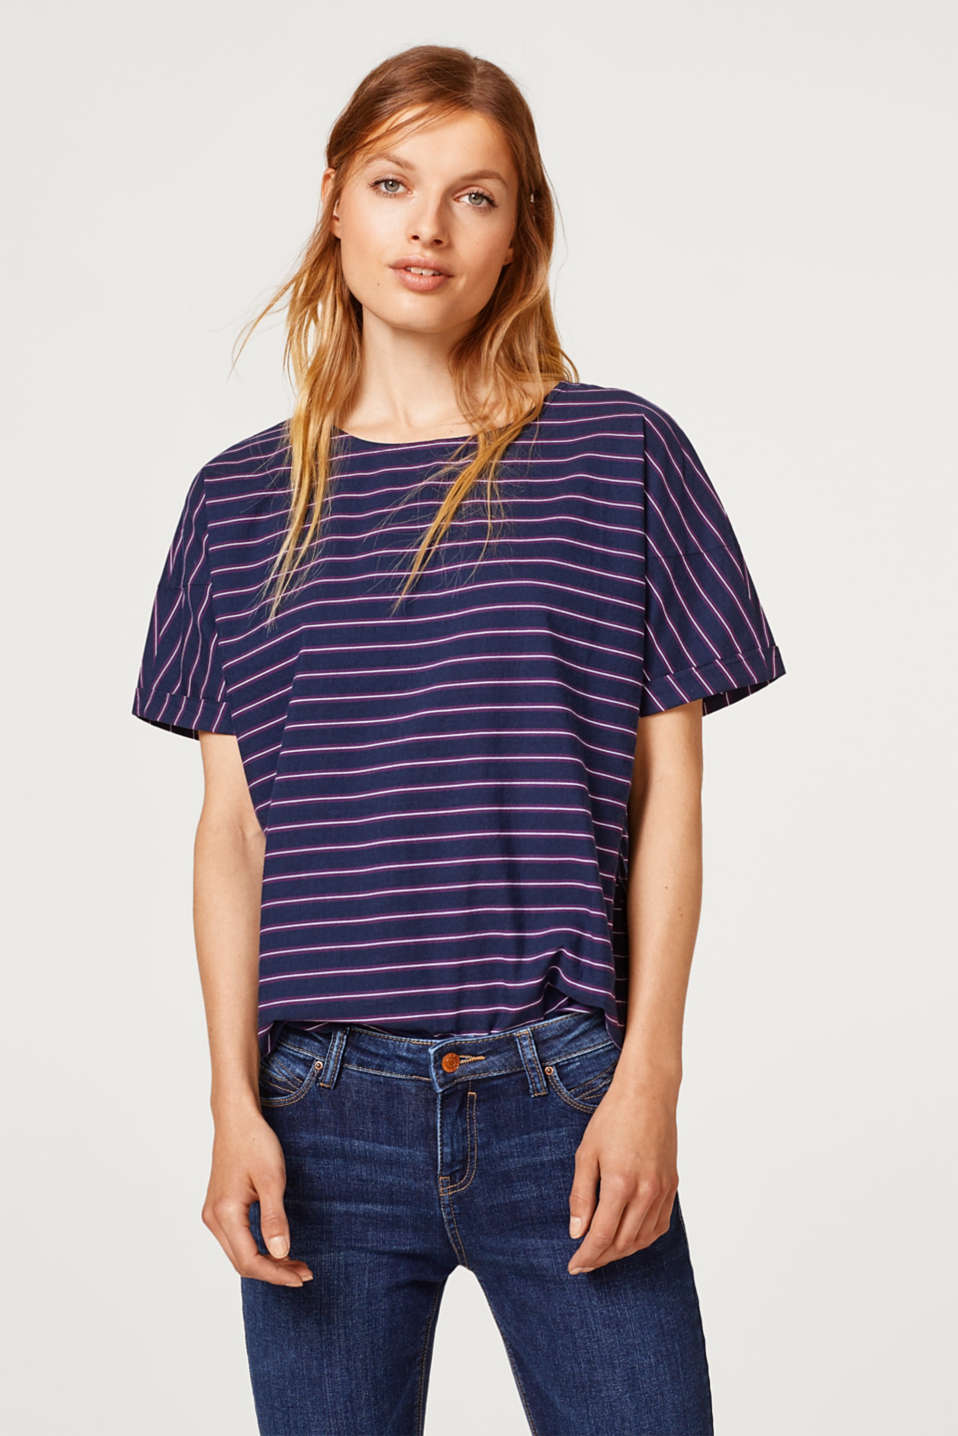 Esprit - Striped blouse top, 100% cotton